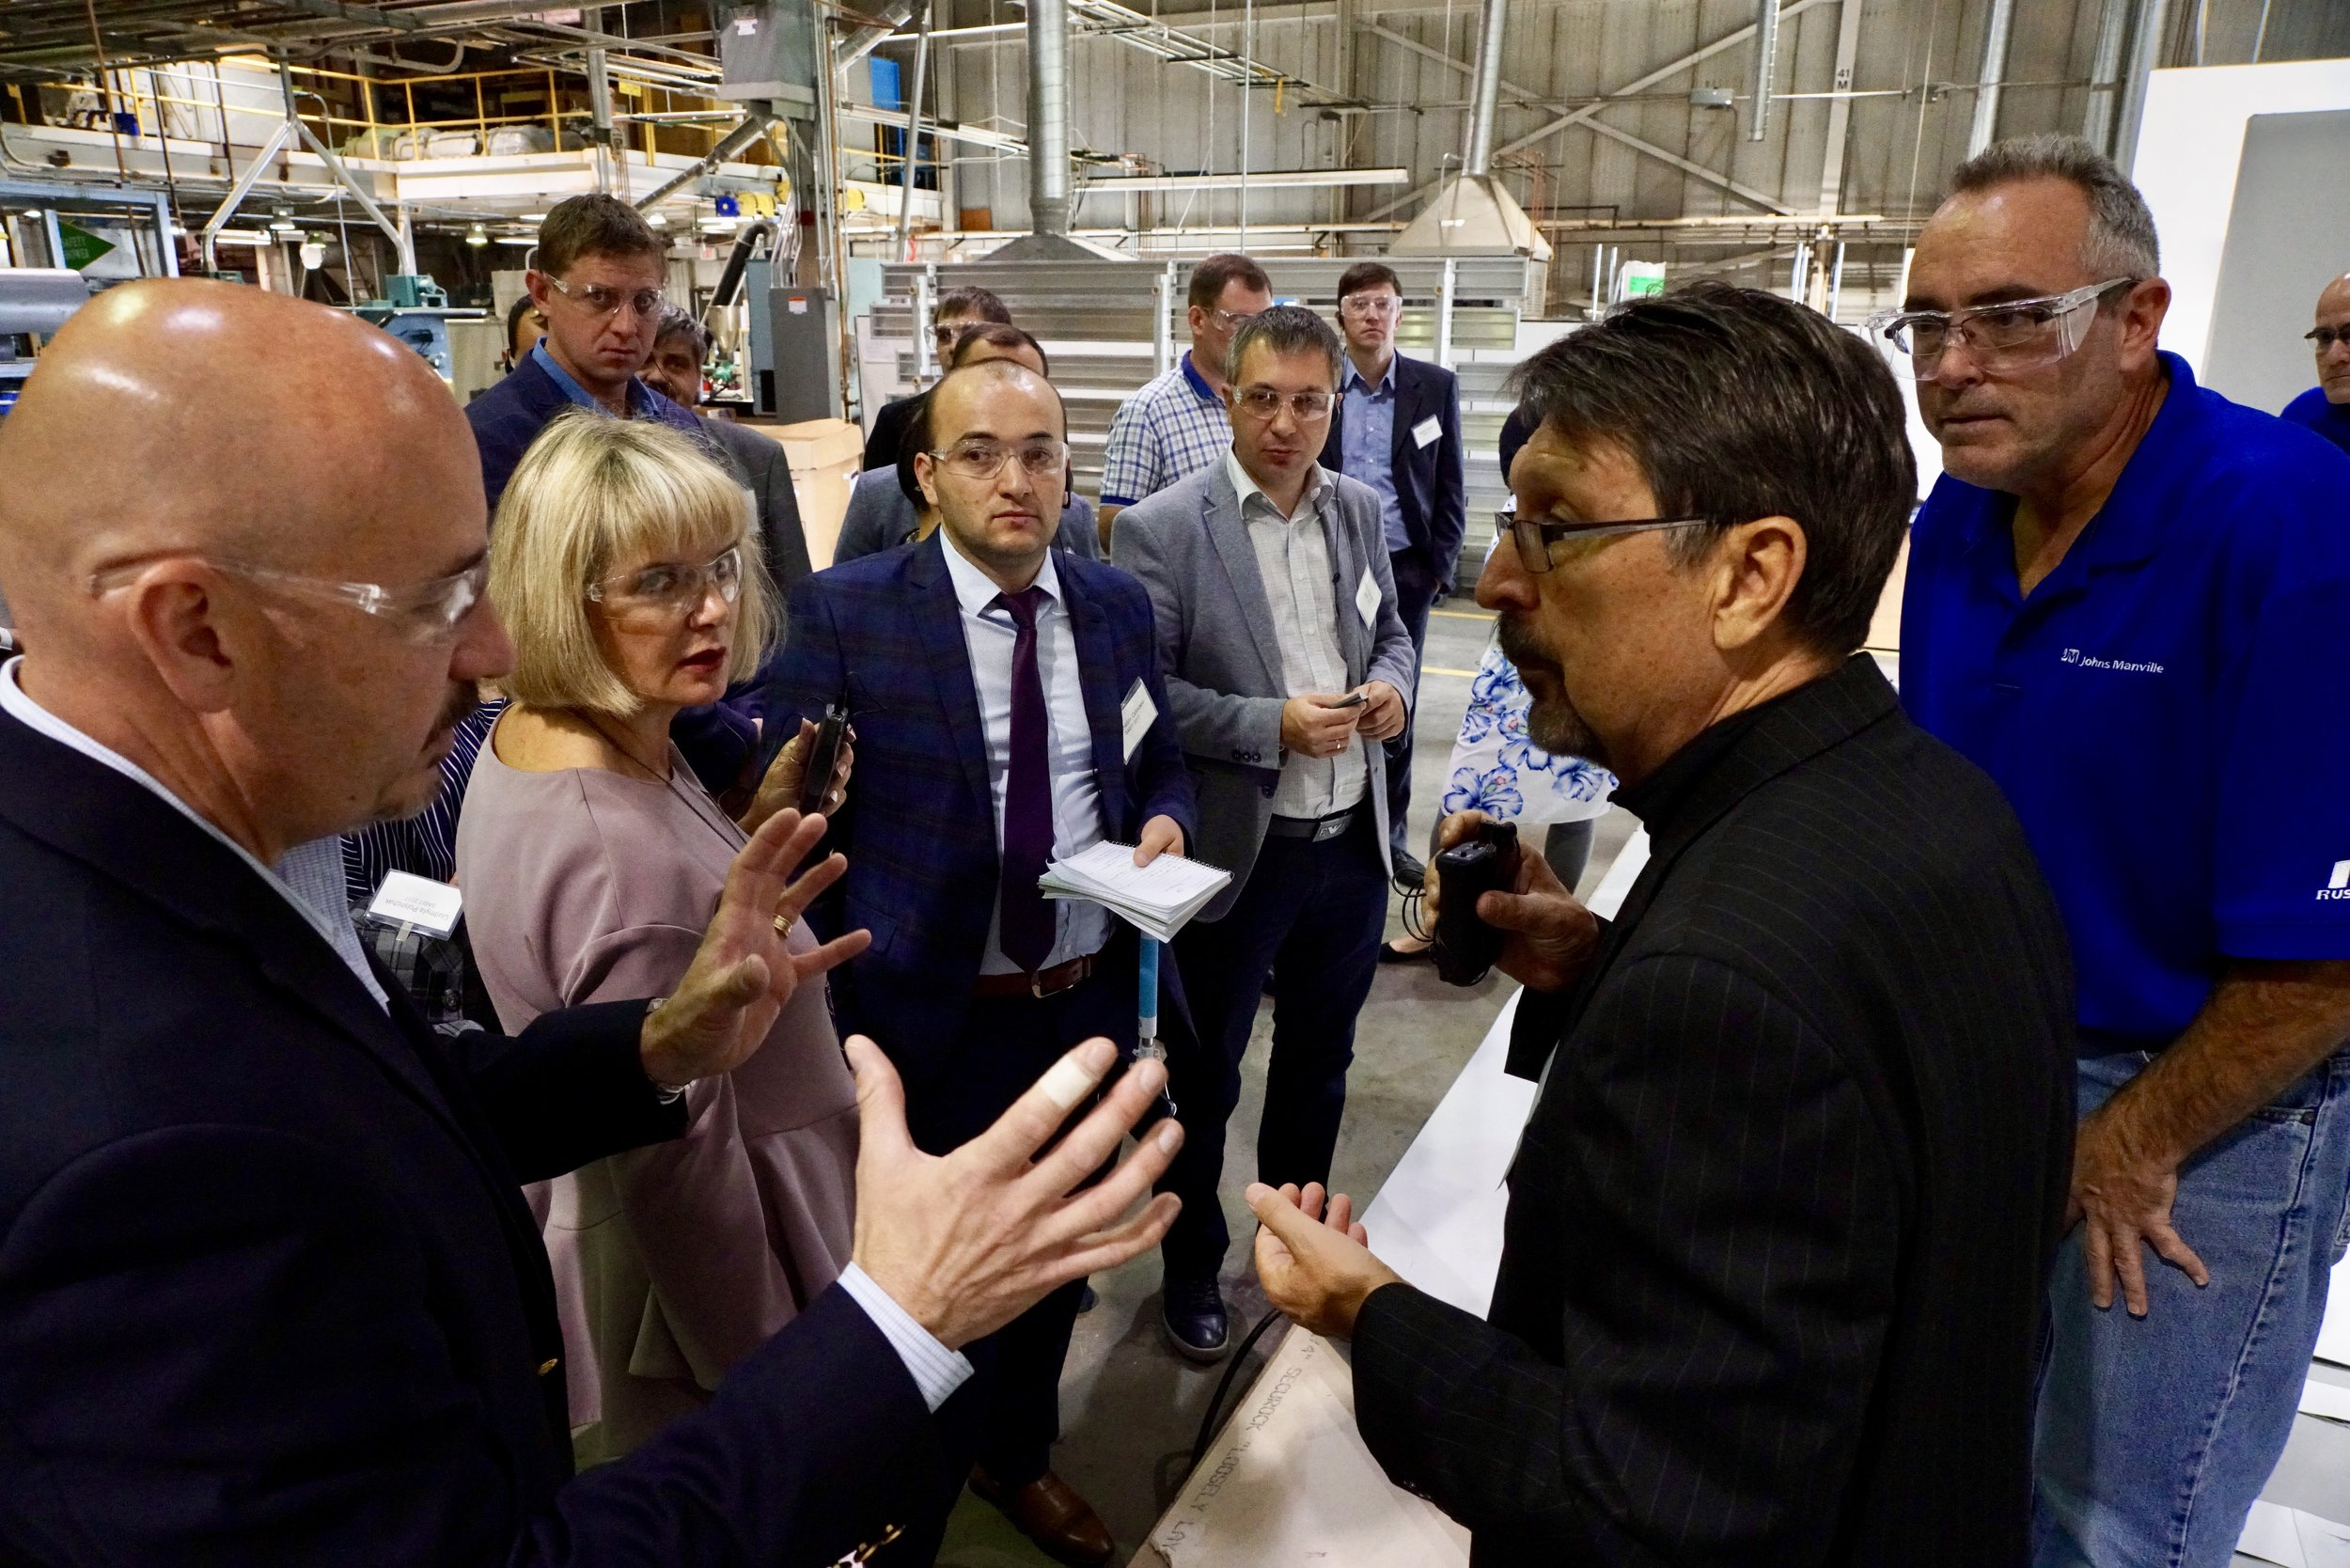 Markian Duma (L) fields questions from Eurasian business leaders as part of the Special American Business Internship Training (SABIT) program through the U.S. Dept. of Commerce.